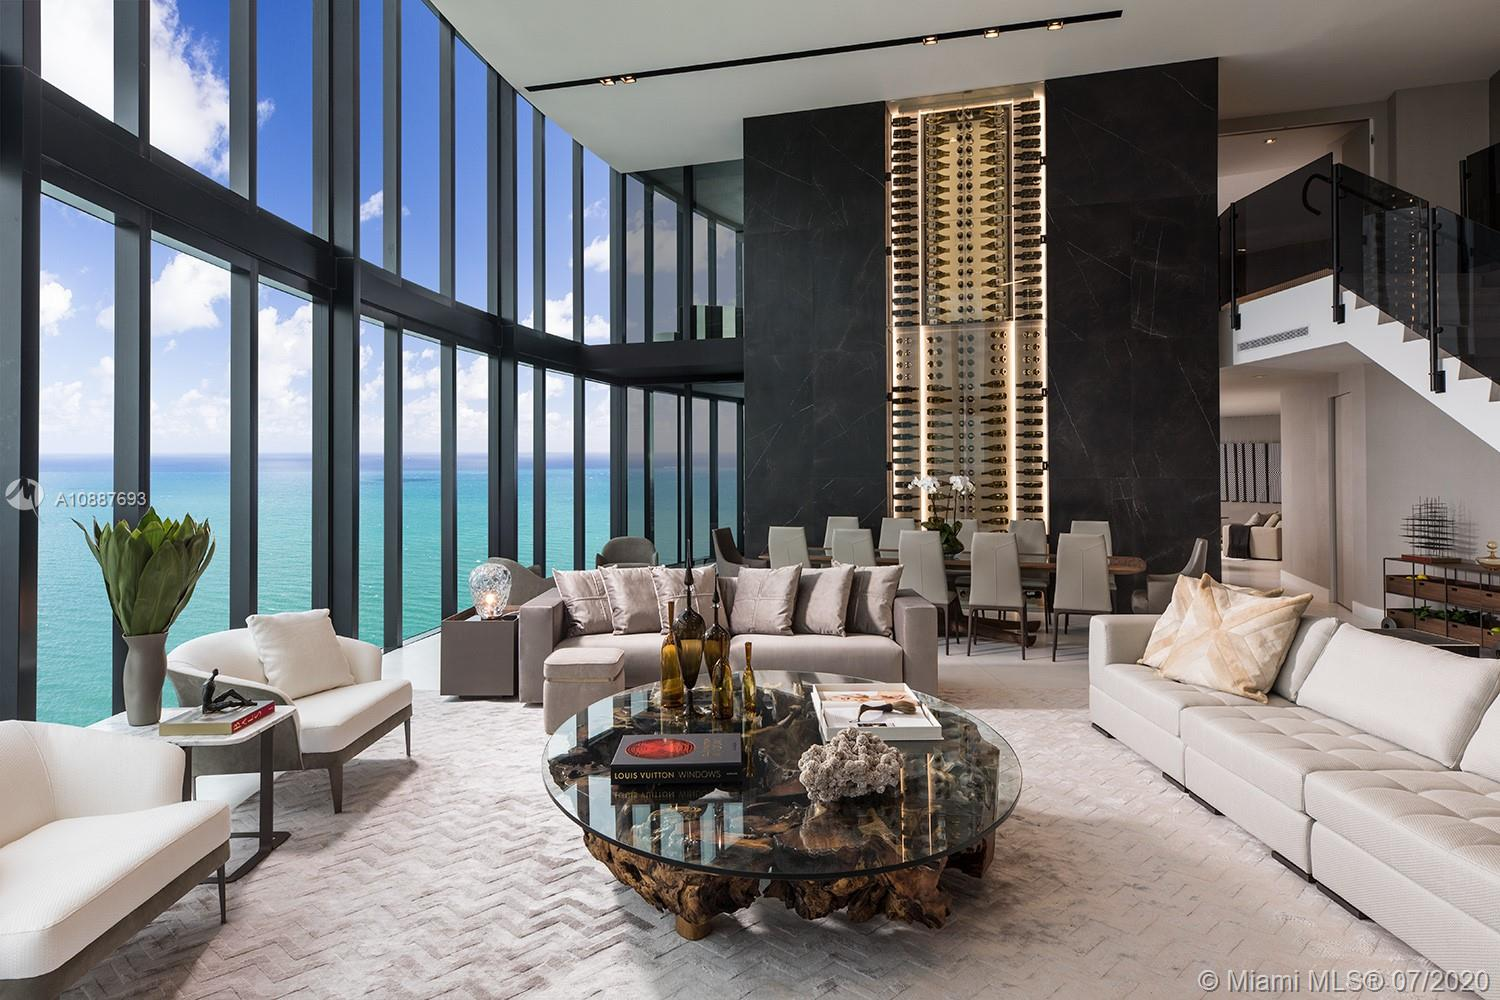 The finest residence at Porsche Design Tower! 5 bed /5.5 bath Trophy Mansion-in-the-Sky with interiors by Artefacto features 6,684SqFt & a 1,128SqFt, 4-car Sky Garage With Private Car Elevator so you can safely get into your 52nd floor Penthouse in complete privacy. Dramatic 21 ft ceilings, glass wine cellar, unobstructed ocean forever views, 3 living areas, private plunge pool, outdoor kitchen & 2 terraces complete the package. High tech upgrades include custom secured foyer entrance, Savant/Sonos AV system & electric shades. Porsche Design amenities include racing car & golf simulators, full-service restaurant, bar, room service, spa, pool & 200 ft on the ocean with beach service.